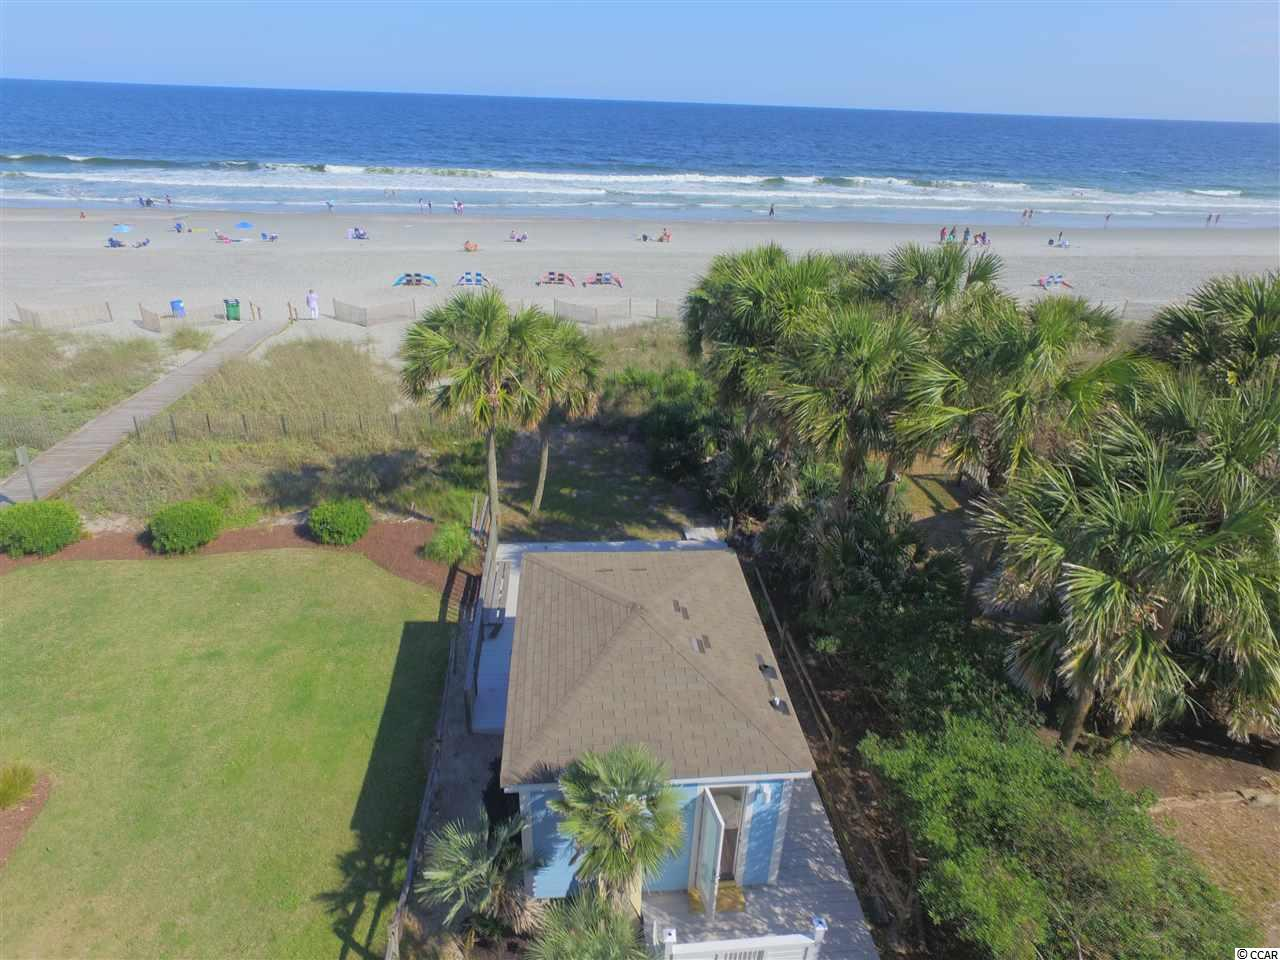 This remodeled day cabana is truly your piece of paradise located on the oceanfront.  What makes this so special is the prime location and the rarity of this highly sought after gem on the pristine white sands of  Myrtle Beach.  Your diamond on the beach has been renovated inside and out in a cool Coastal theme.  Enjoy the large deck, yard for sunning and games, convenience of a restroom, air conditioned, napping couch, dish sink or wet bar, full size refrigerator, beach accessory storage, outside shower and amazing views and sea breezes from this oceanfront property while you enjoy the beach.  Awesome location to have oceanfront cookouts with friends and family or just enjoy some well deserved solitude at the beach.   The exterior is durable concrete fiber cement siding.  The location is central to all the fun of the Grand Strand including shopping, dining, golf and attractions.  Don't miss out on this special opportunity.